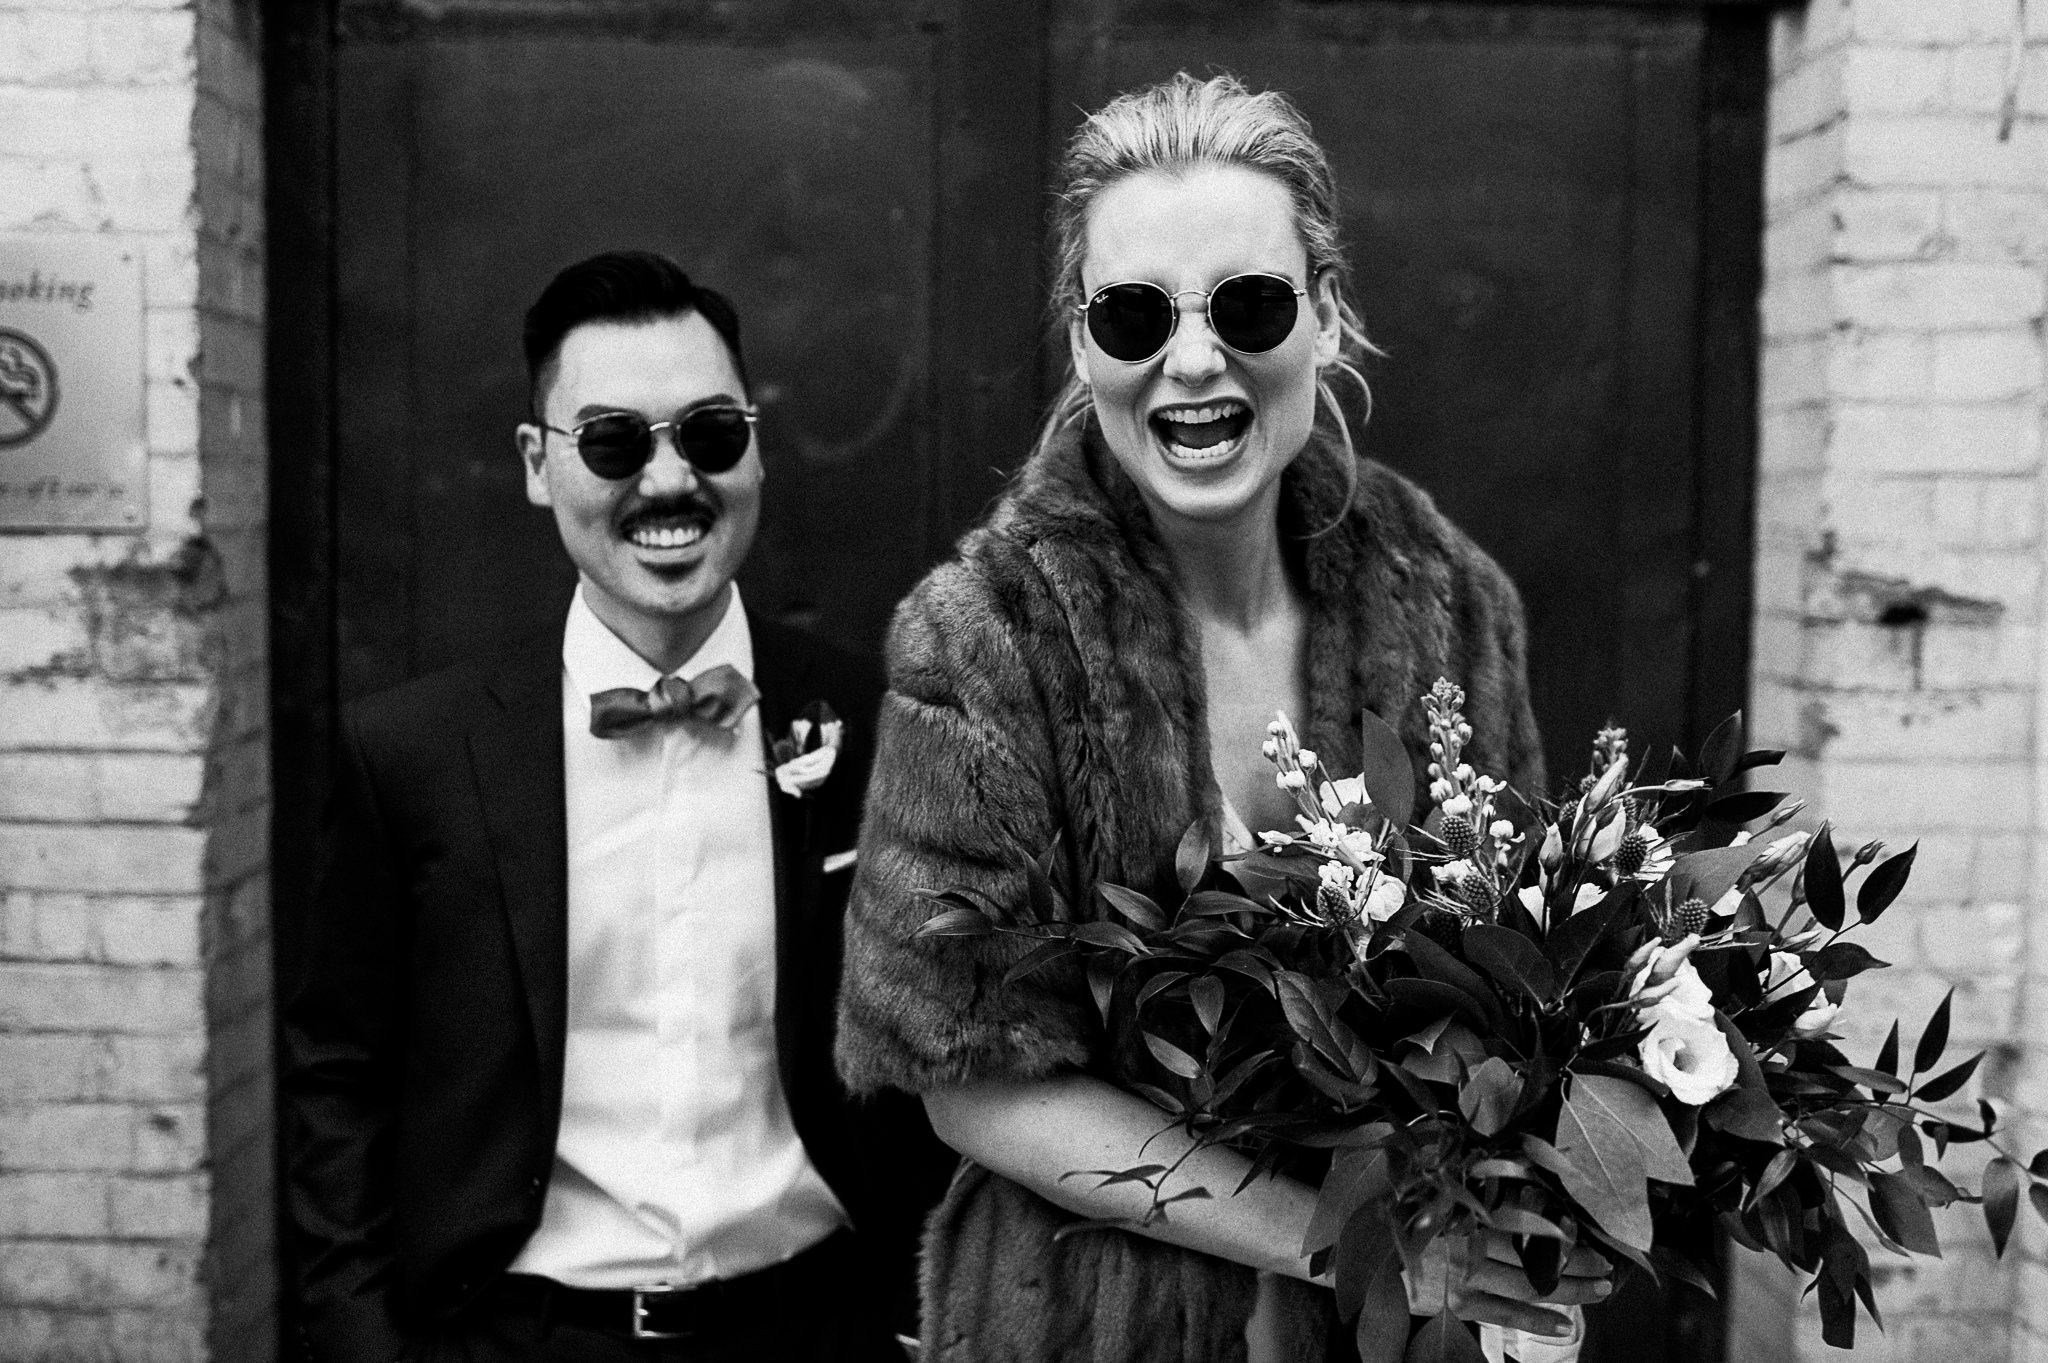 A black and white photo of a wedding couple that laughs wholeheartedly.